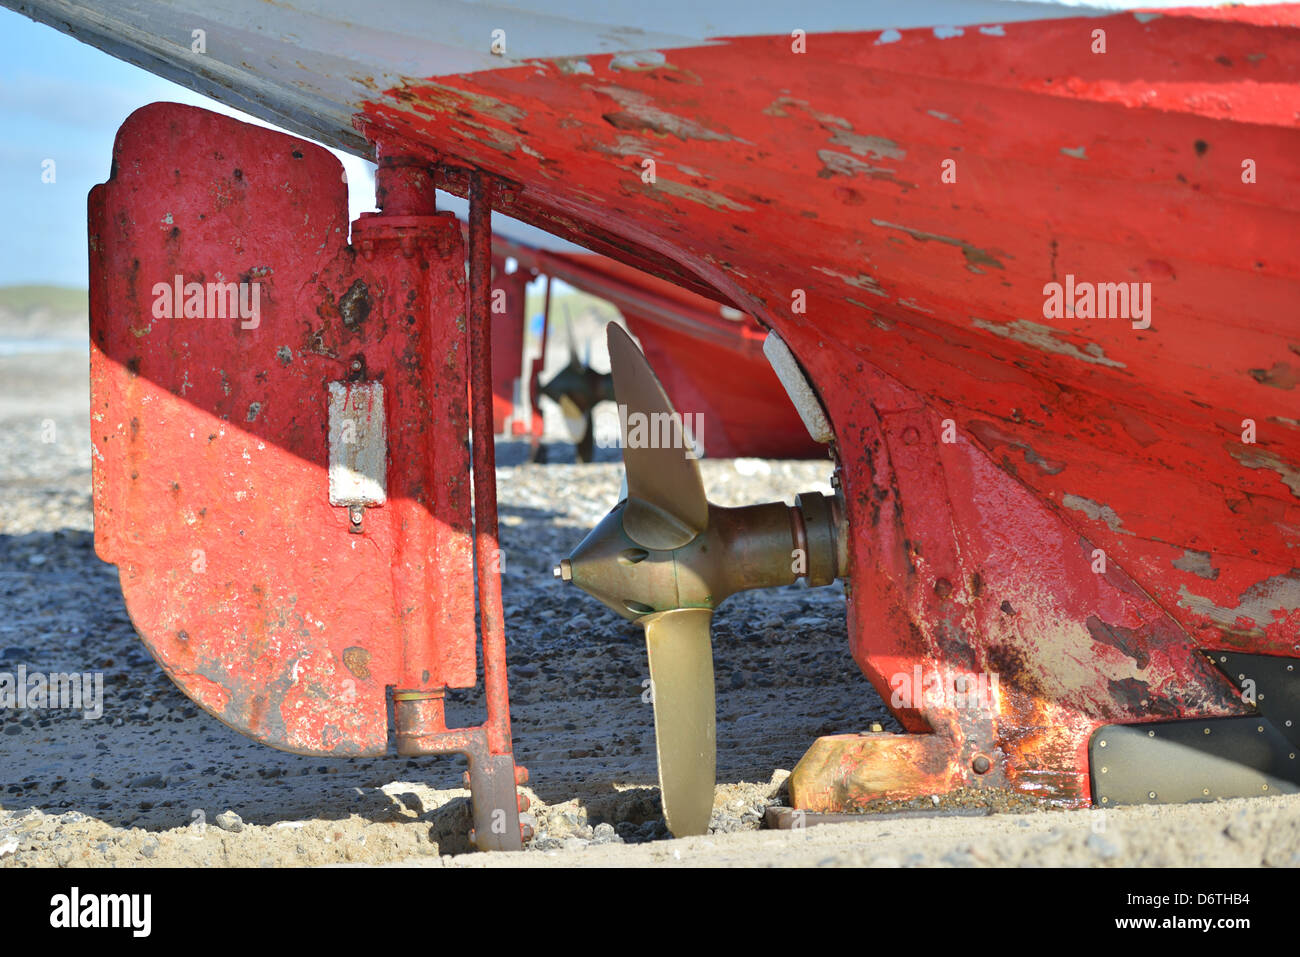 Propeller of a fishing boat - Stock Image